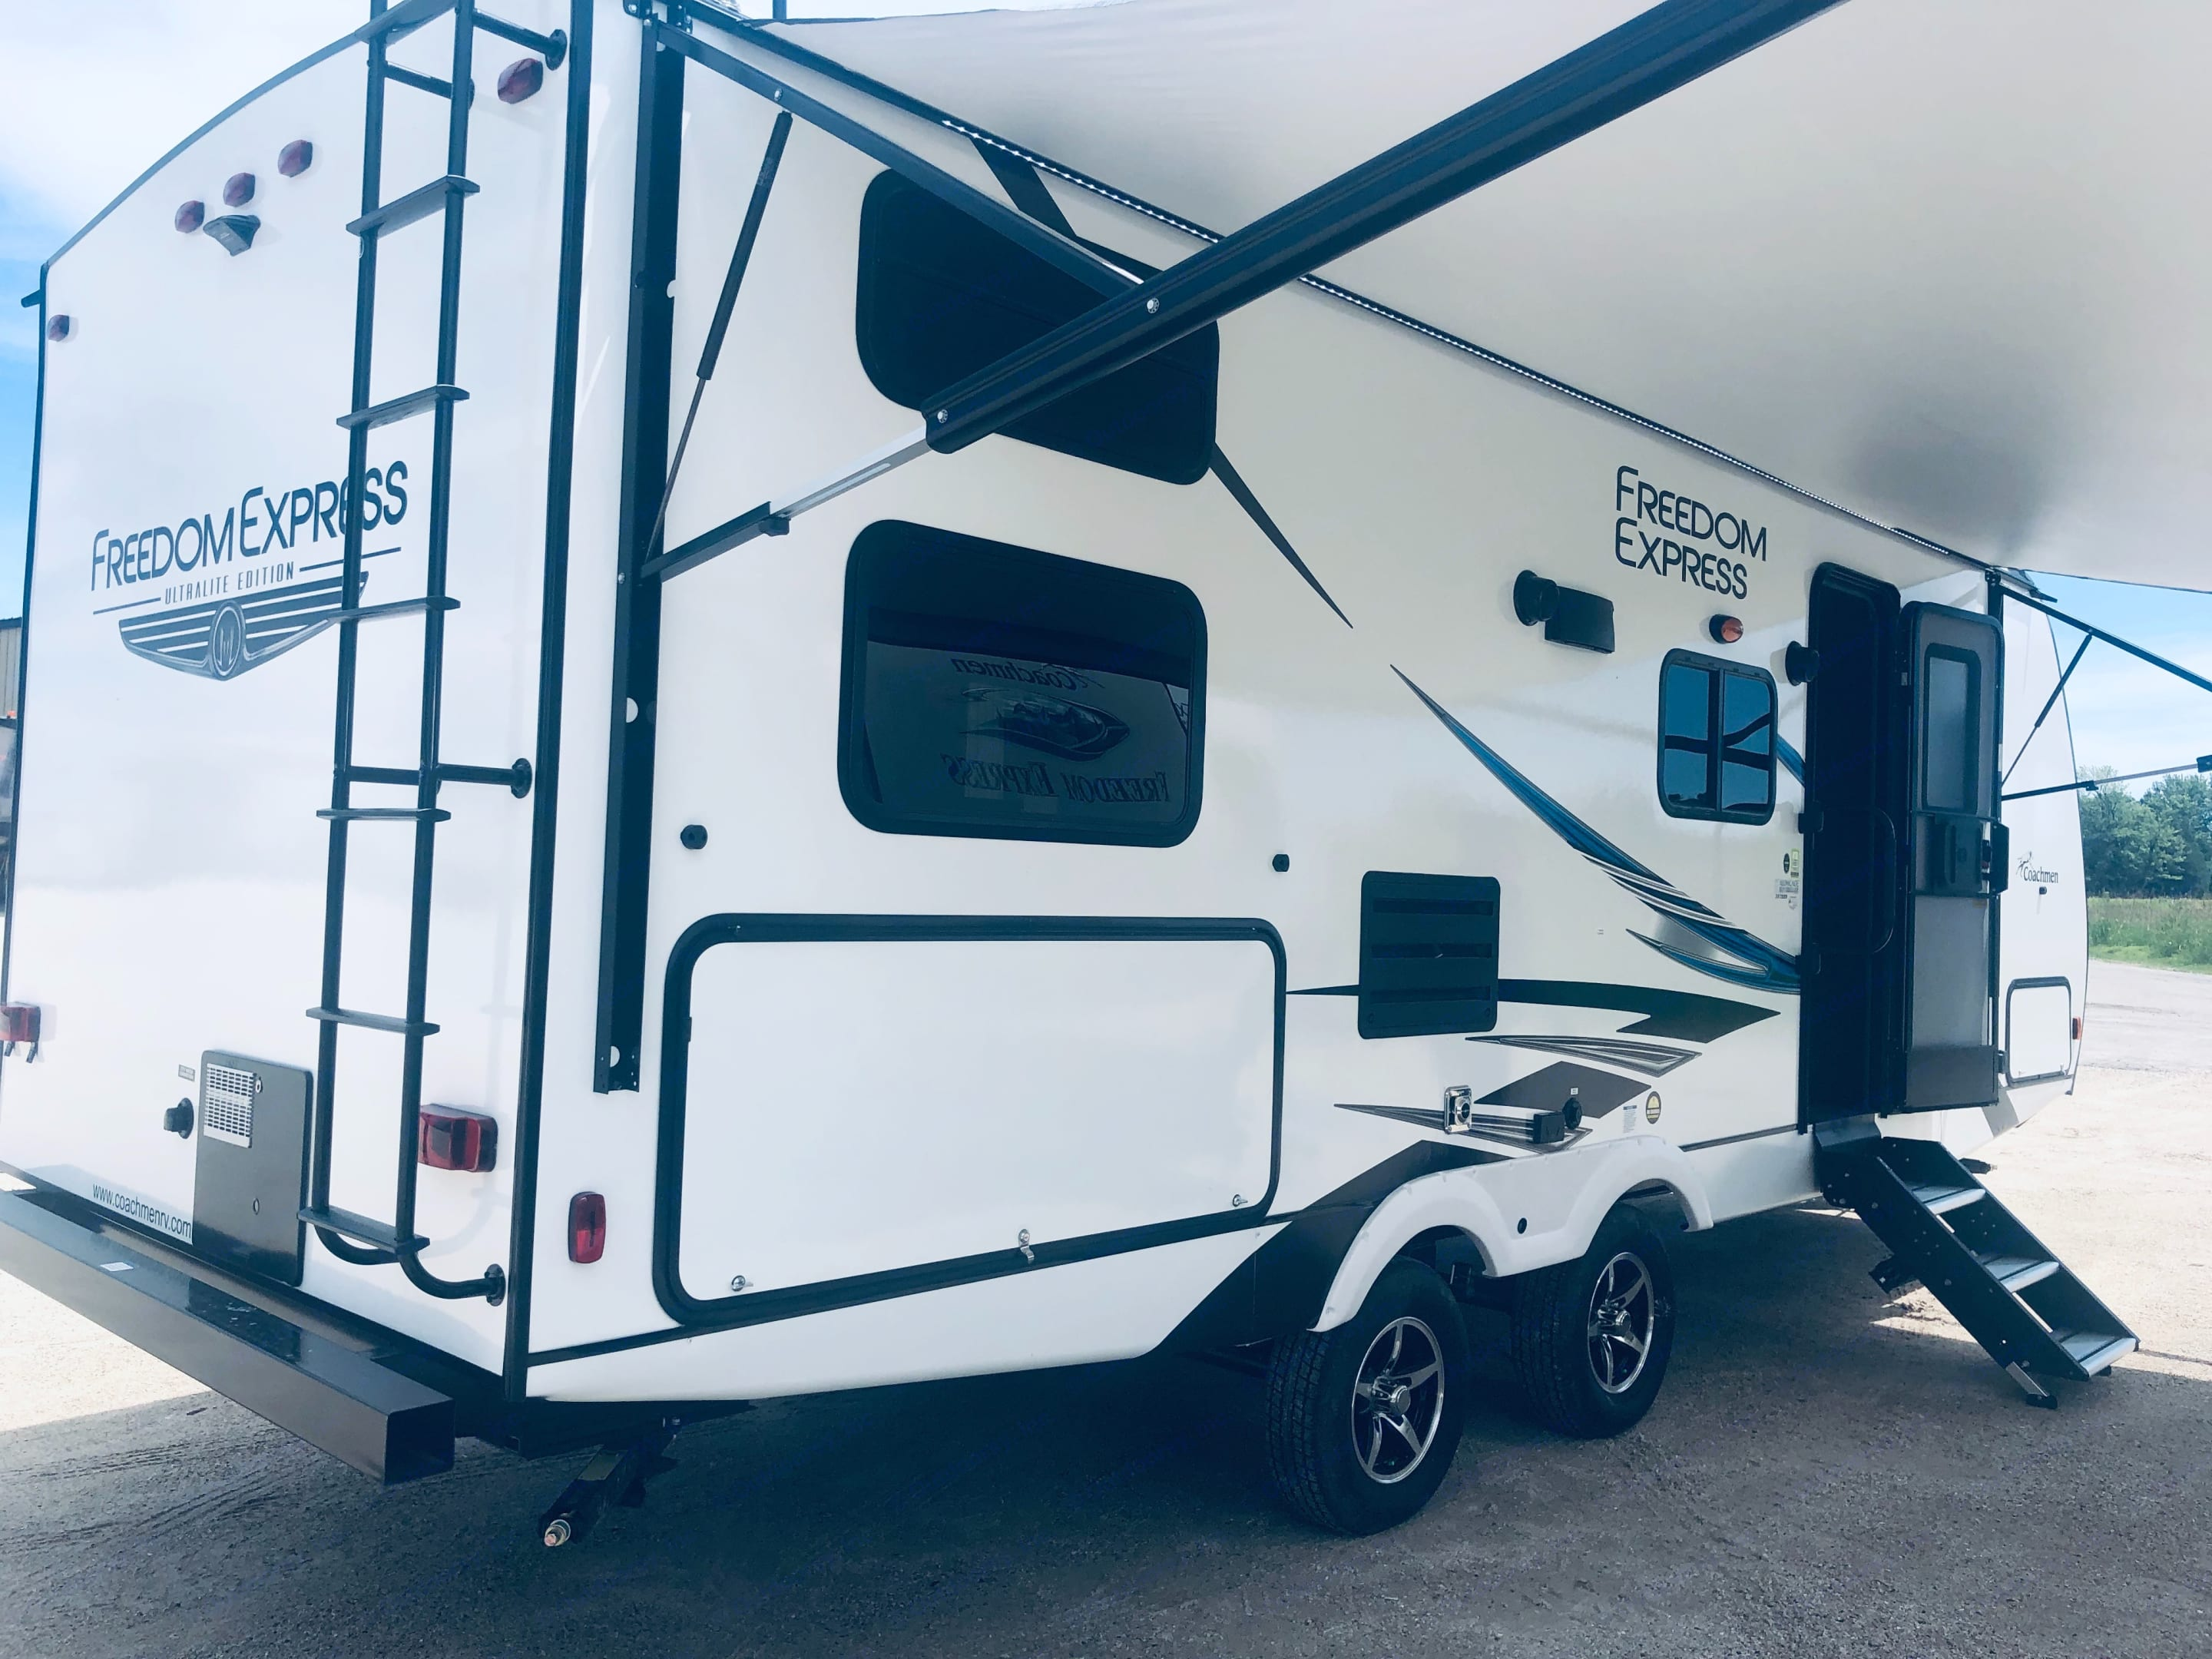 Manufactured in May 2019. Show-stopping 20ft motorized awning with LED lights.. Forest River Freedom 2020